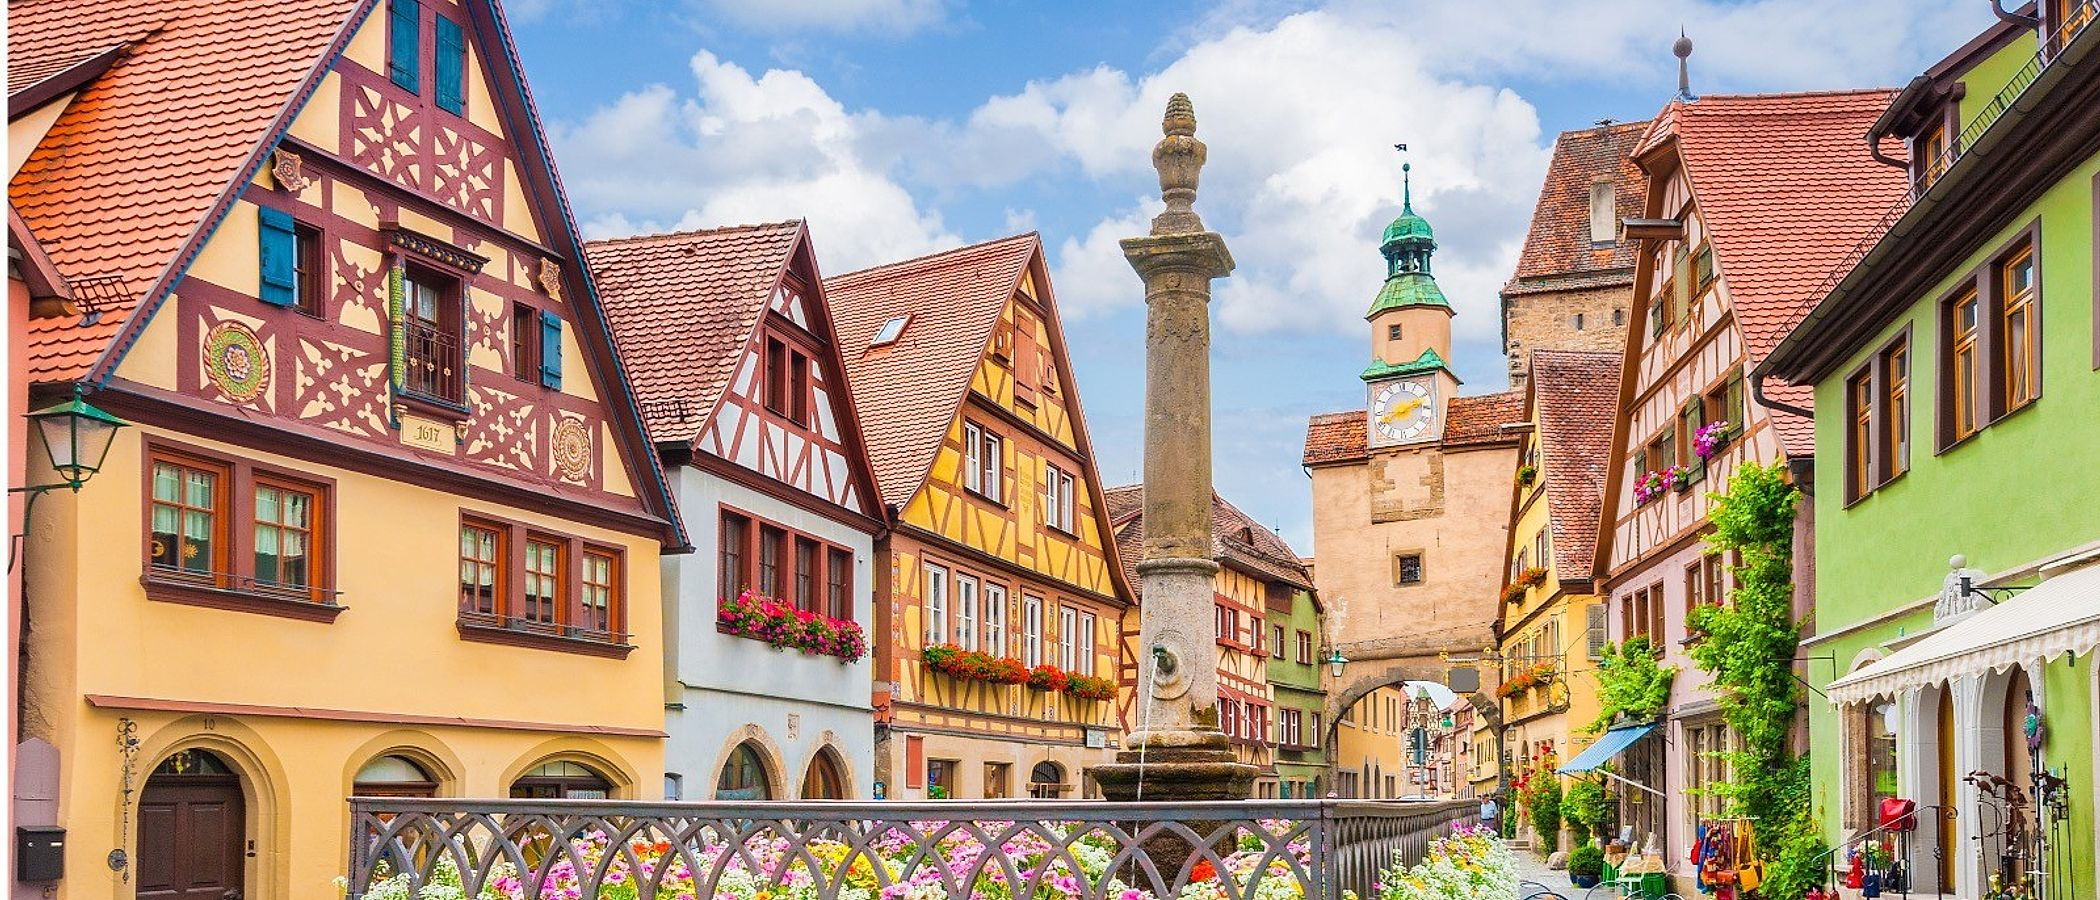 Rothenburg travel packages